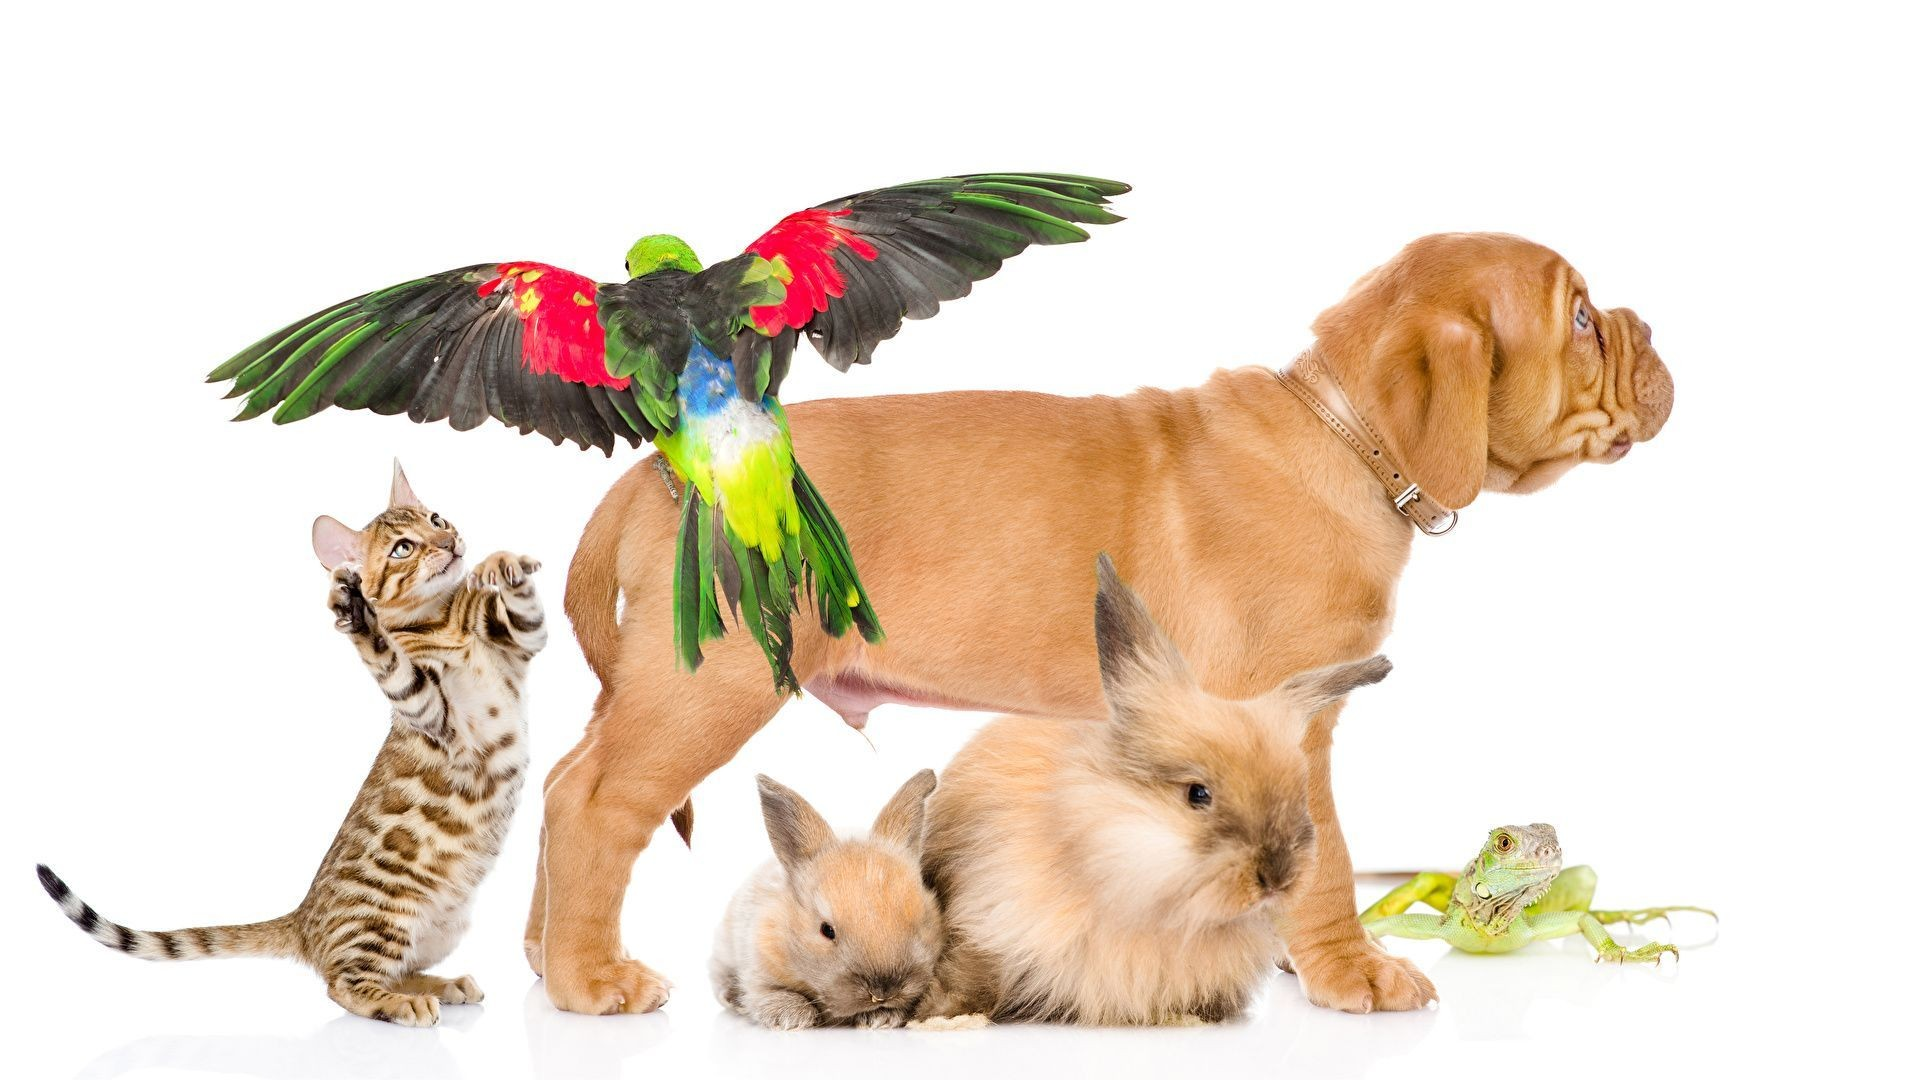 Dogs_Cats_Rabbits_Parrots_Frogs_White_background_549733_1920x1080